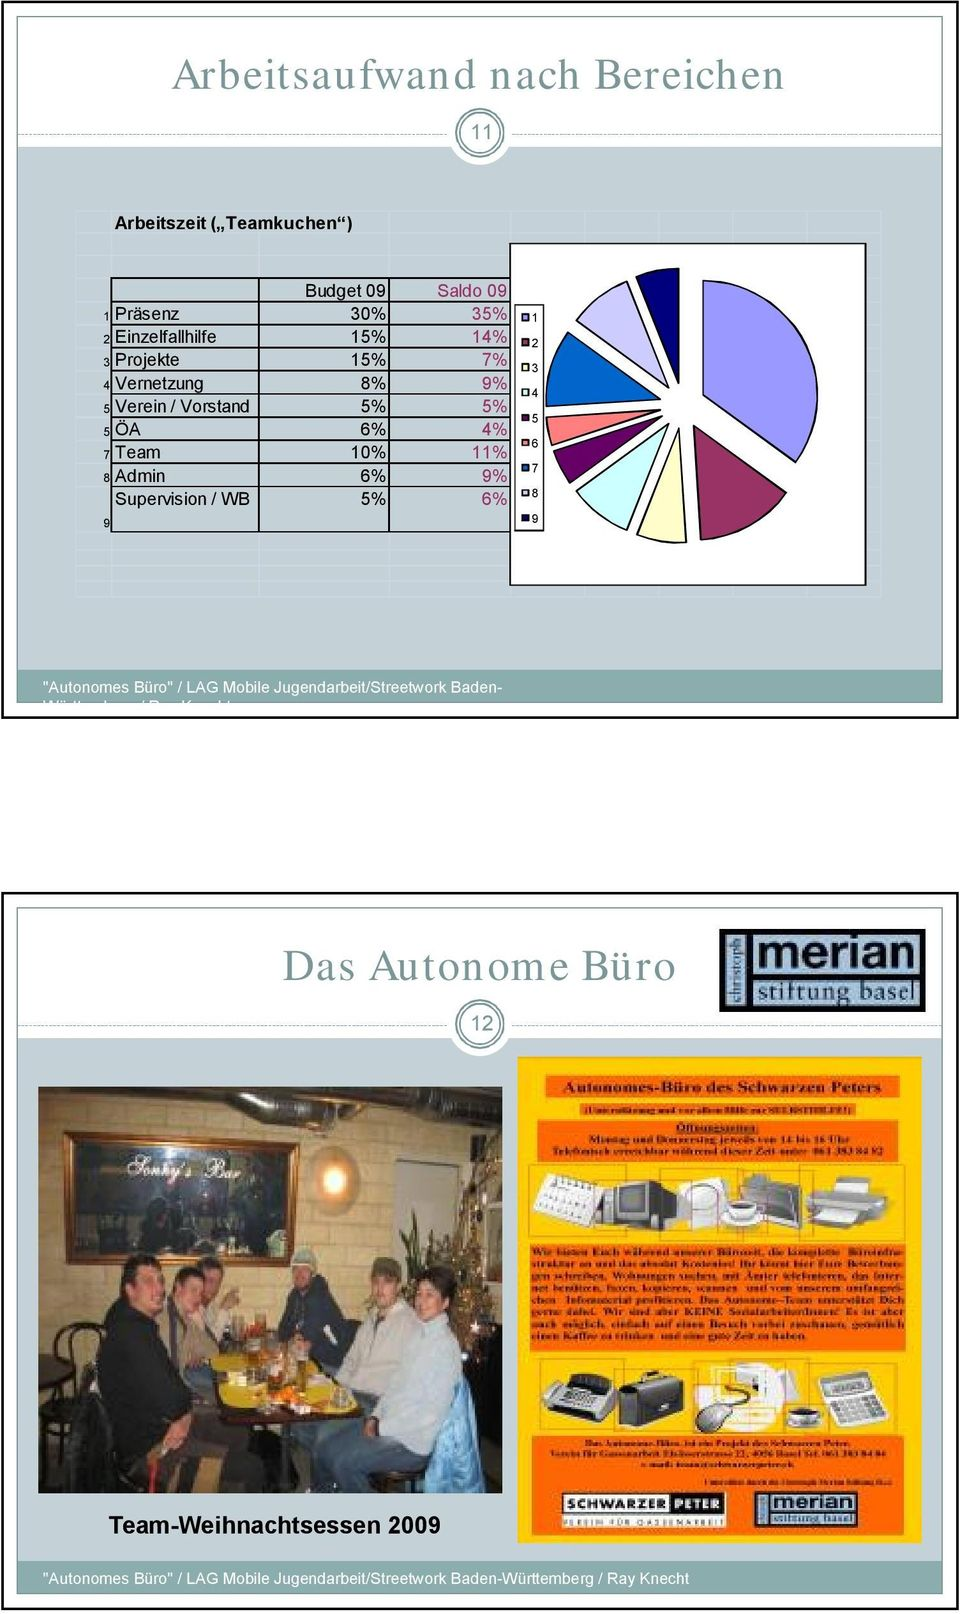 "Team 10% 11% 8 Admin 6% 9% Supervision / WB 5% 6% 9 1 2 3 4 5 6 7 8 9 ""Autonomes Büro"" / LAG Mobile"